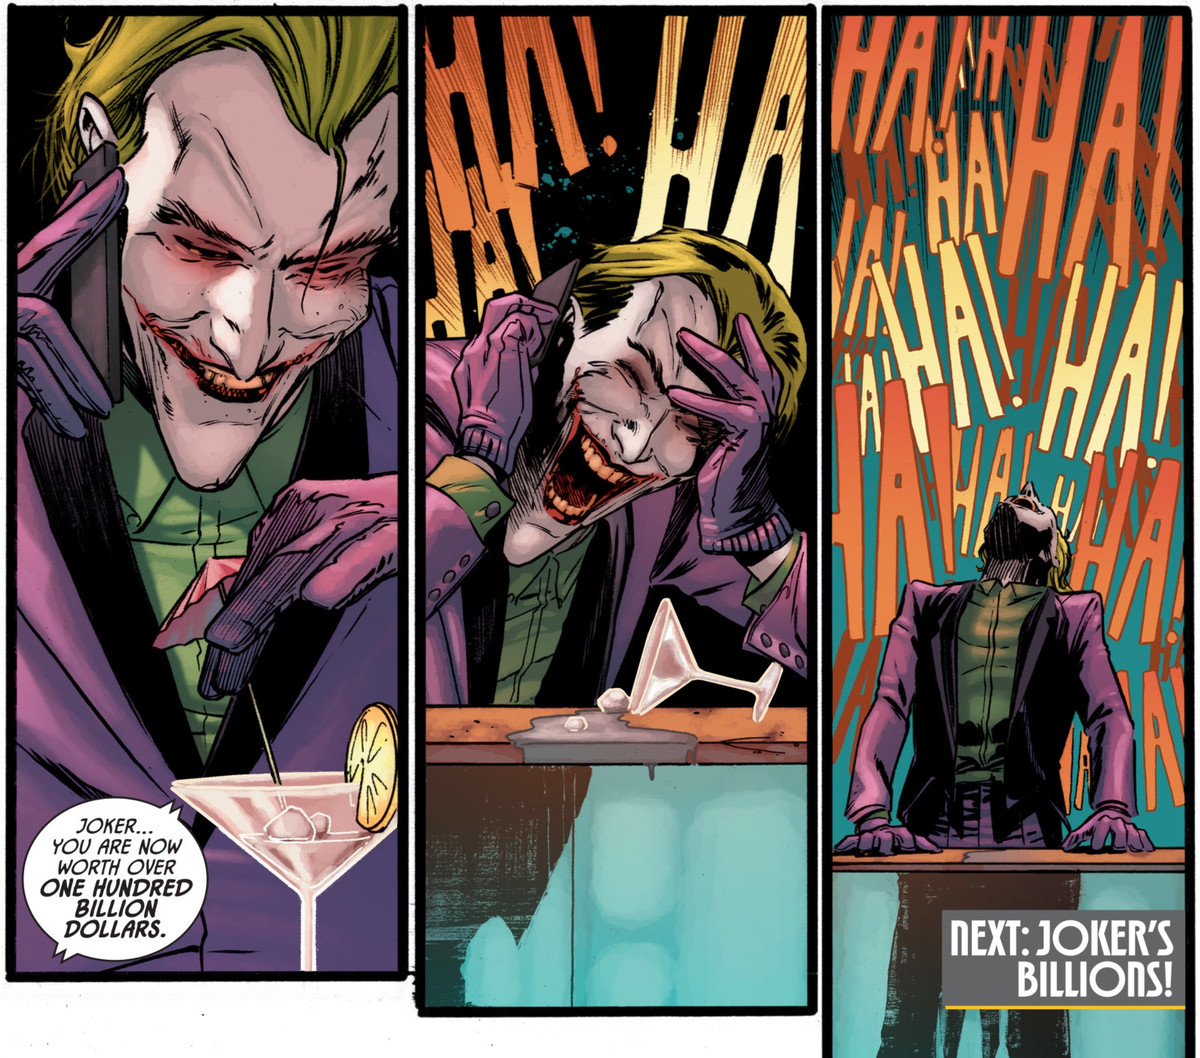 The Joker laughs and laughs as a man tells him that he is now worth over one hundred billion dollars, in Batman #93, DC Comics (2020).